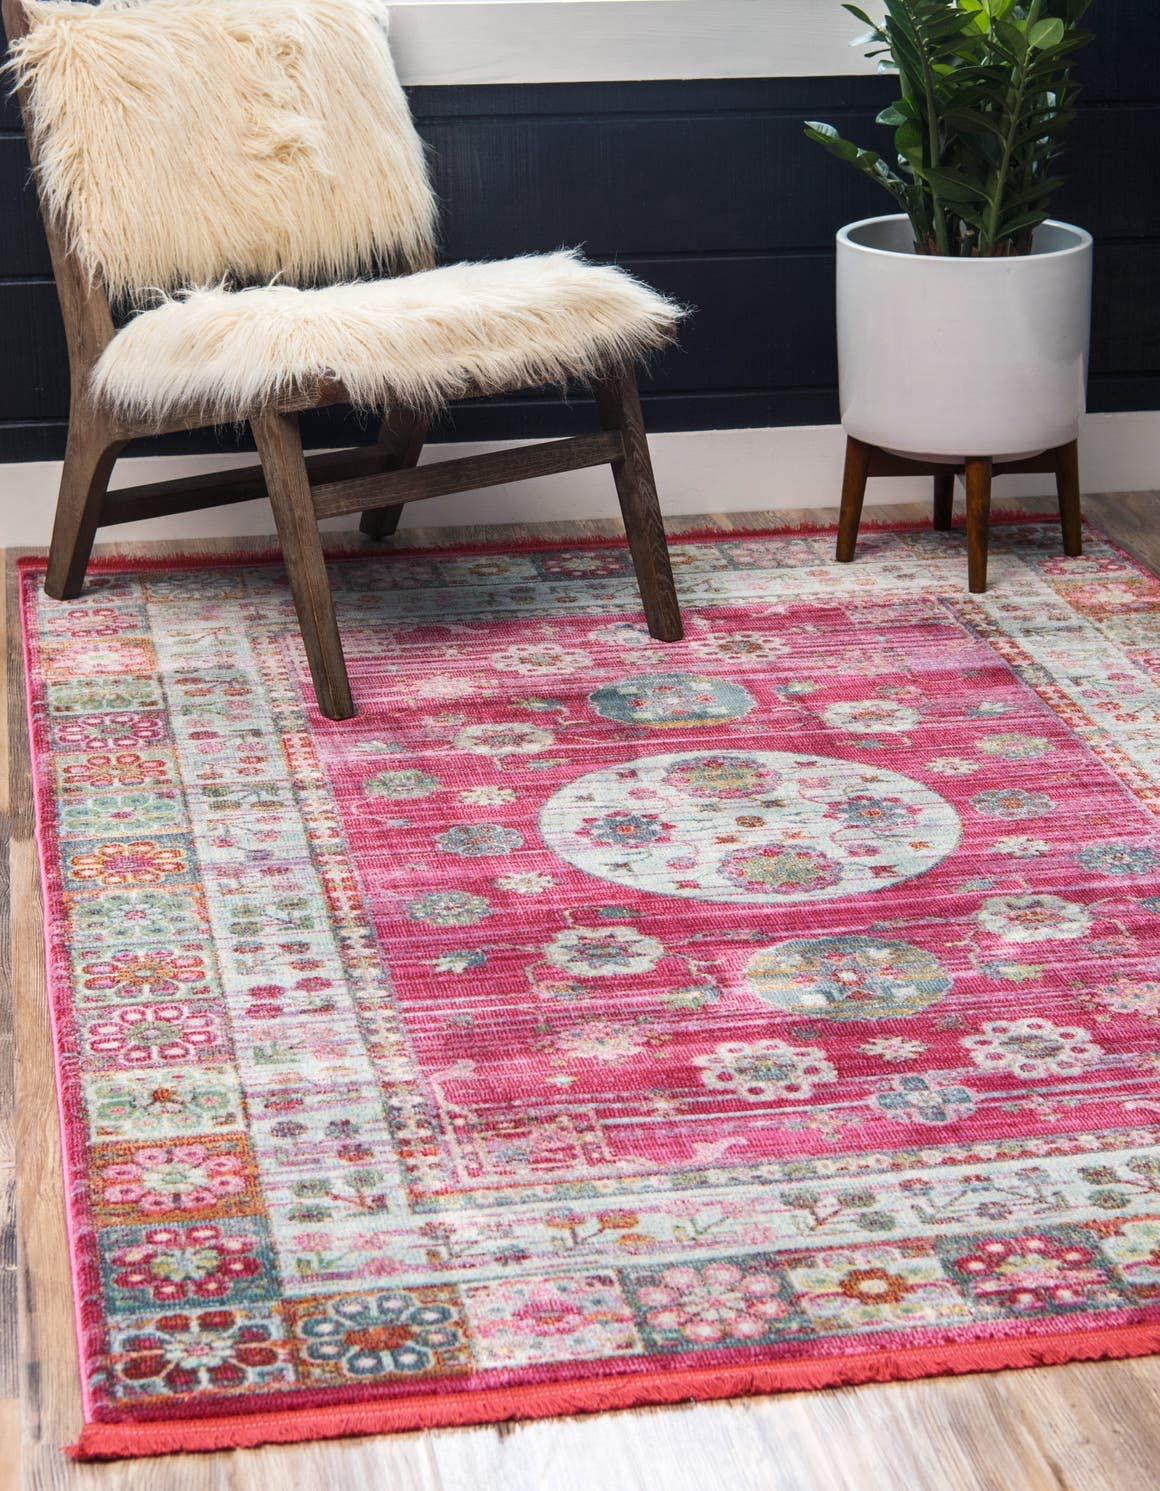 Unique Loom Baracoa Collection Bright Tones Vintage Traditional Pink Area Rug 10 0 x 13 0